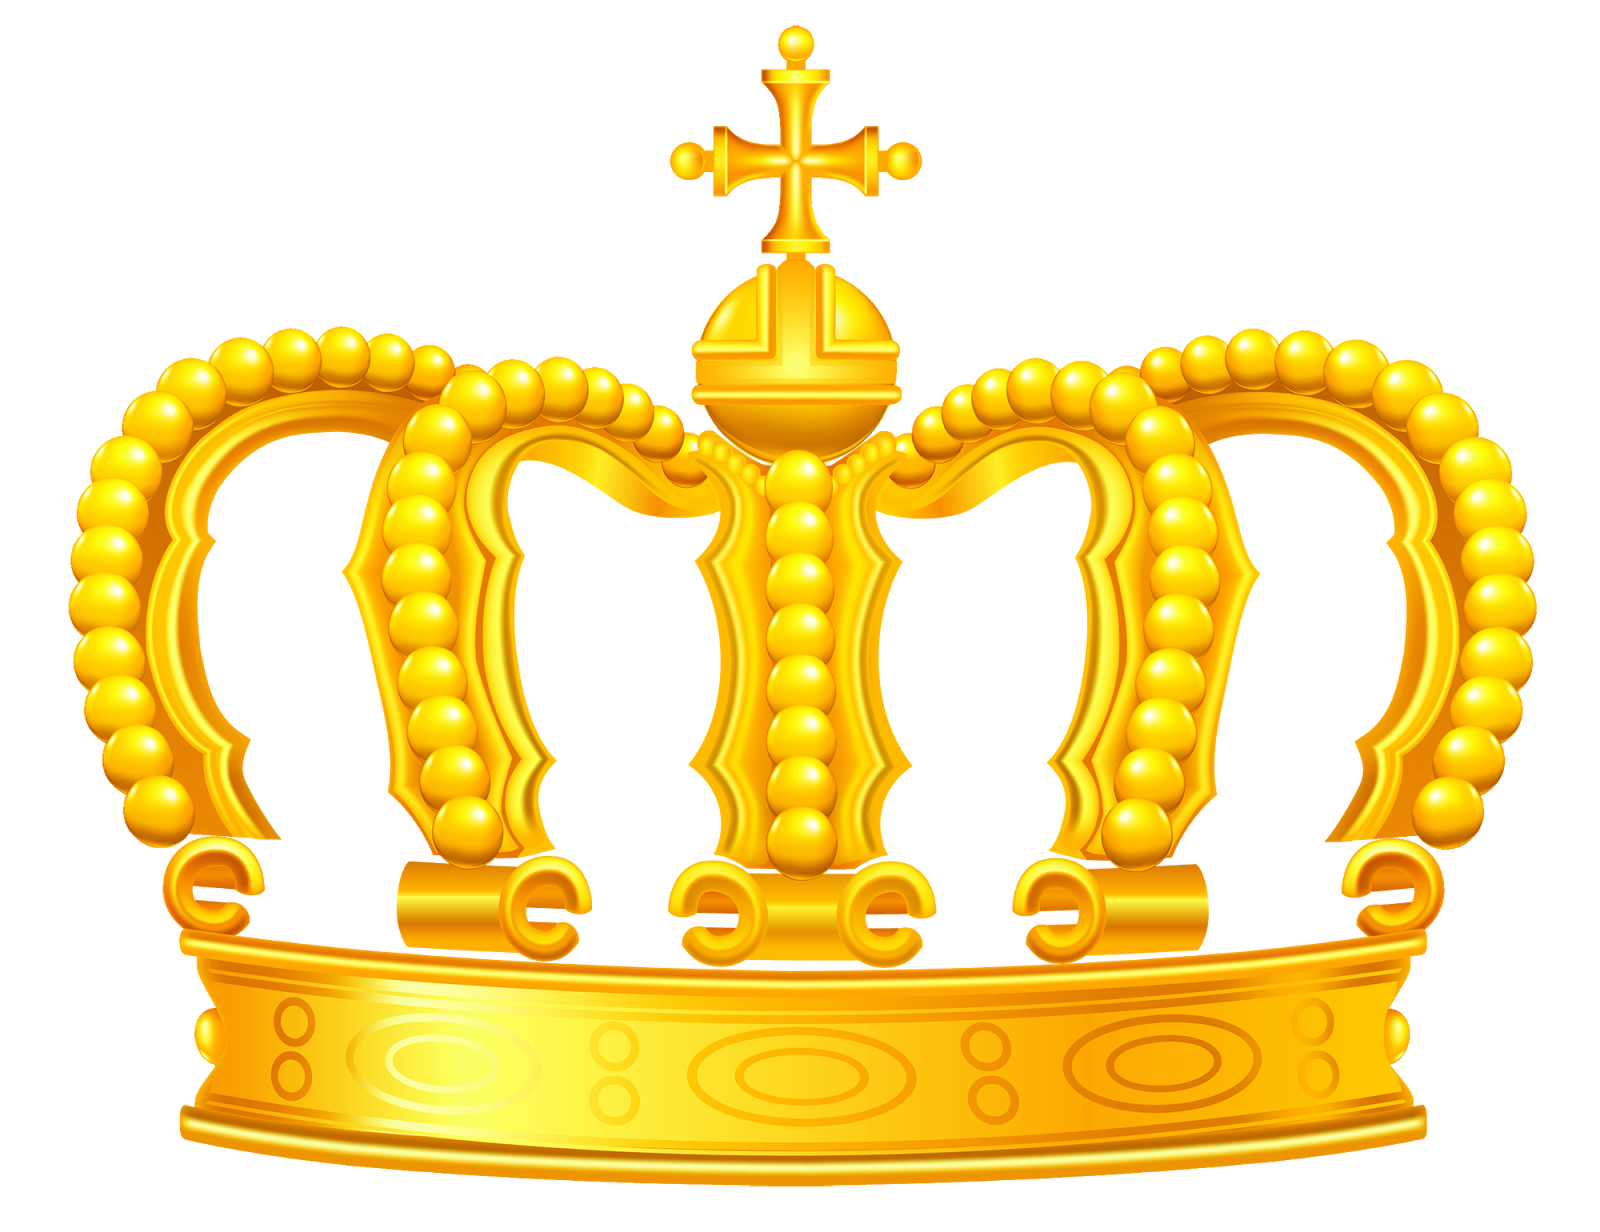 Queen's crown clipart royalty free stock Artes, ideias, moldes, personalizados para festas. | Clip Art ... royalty free stock